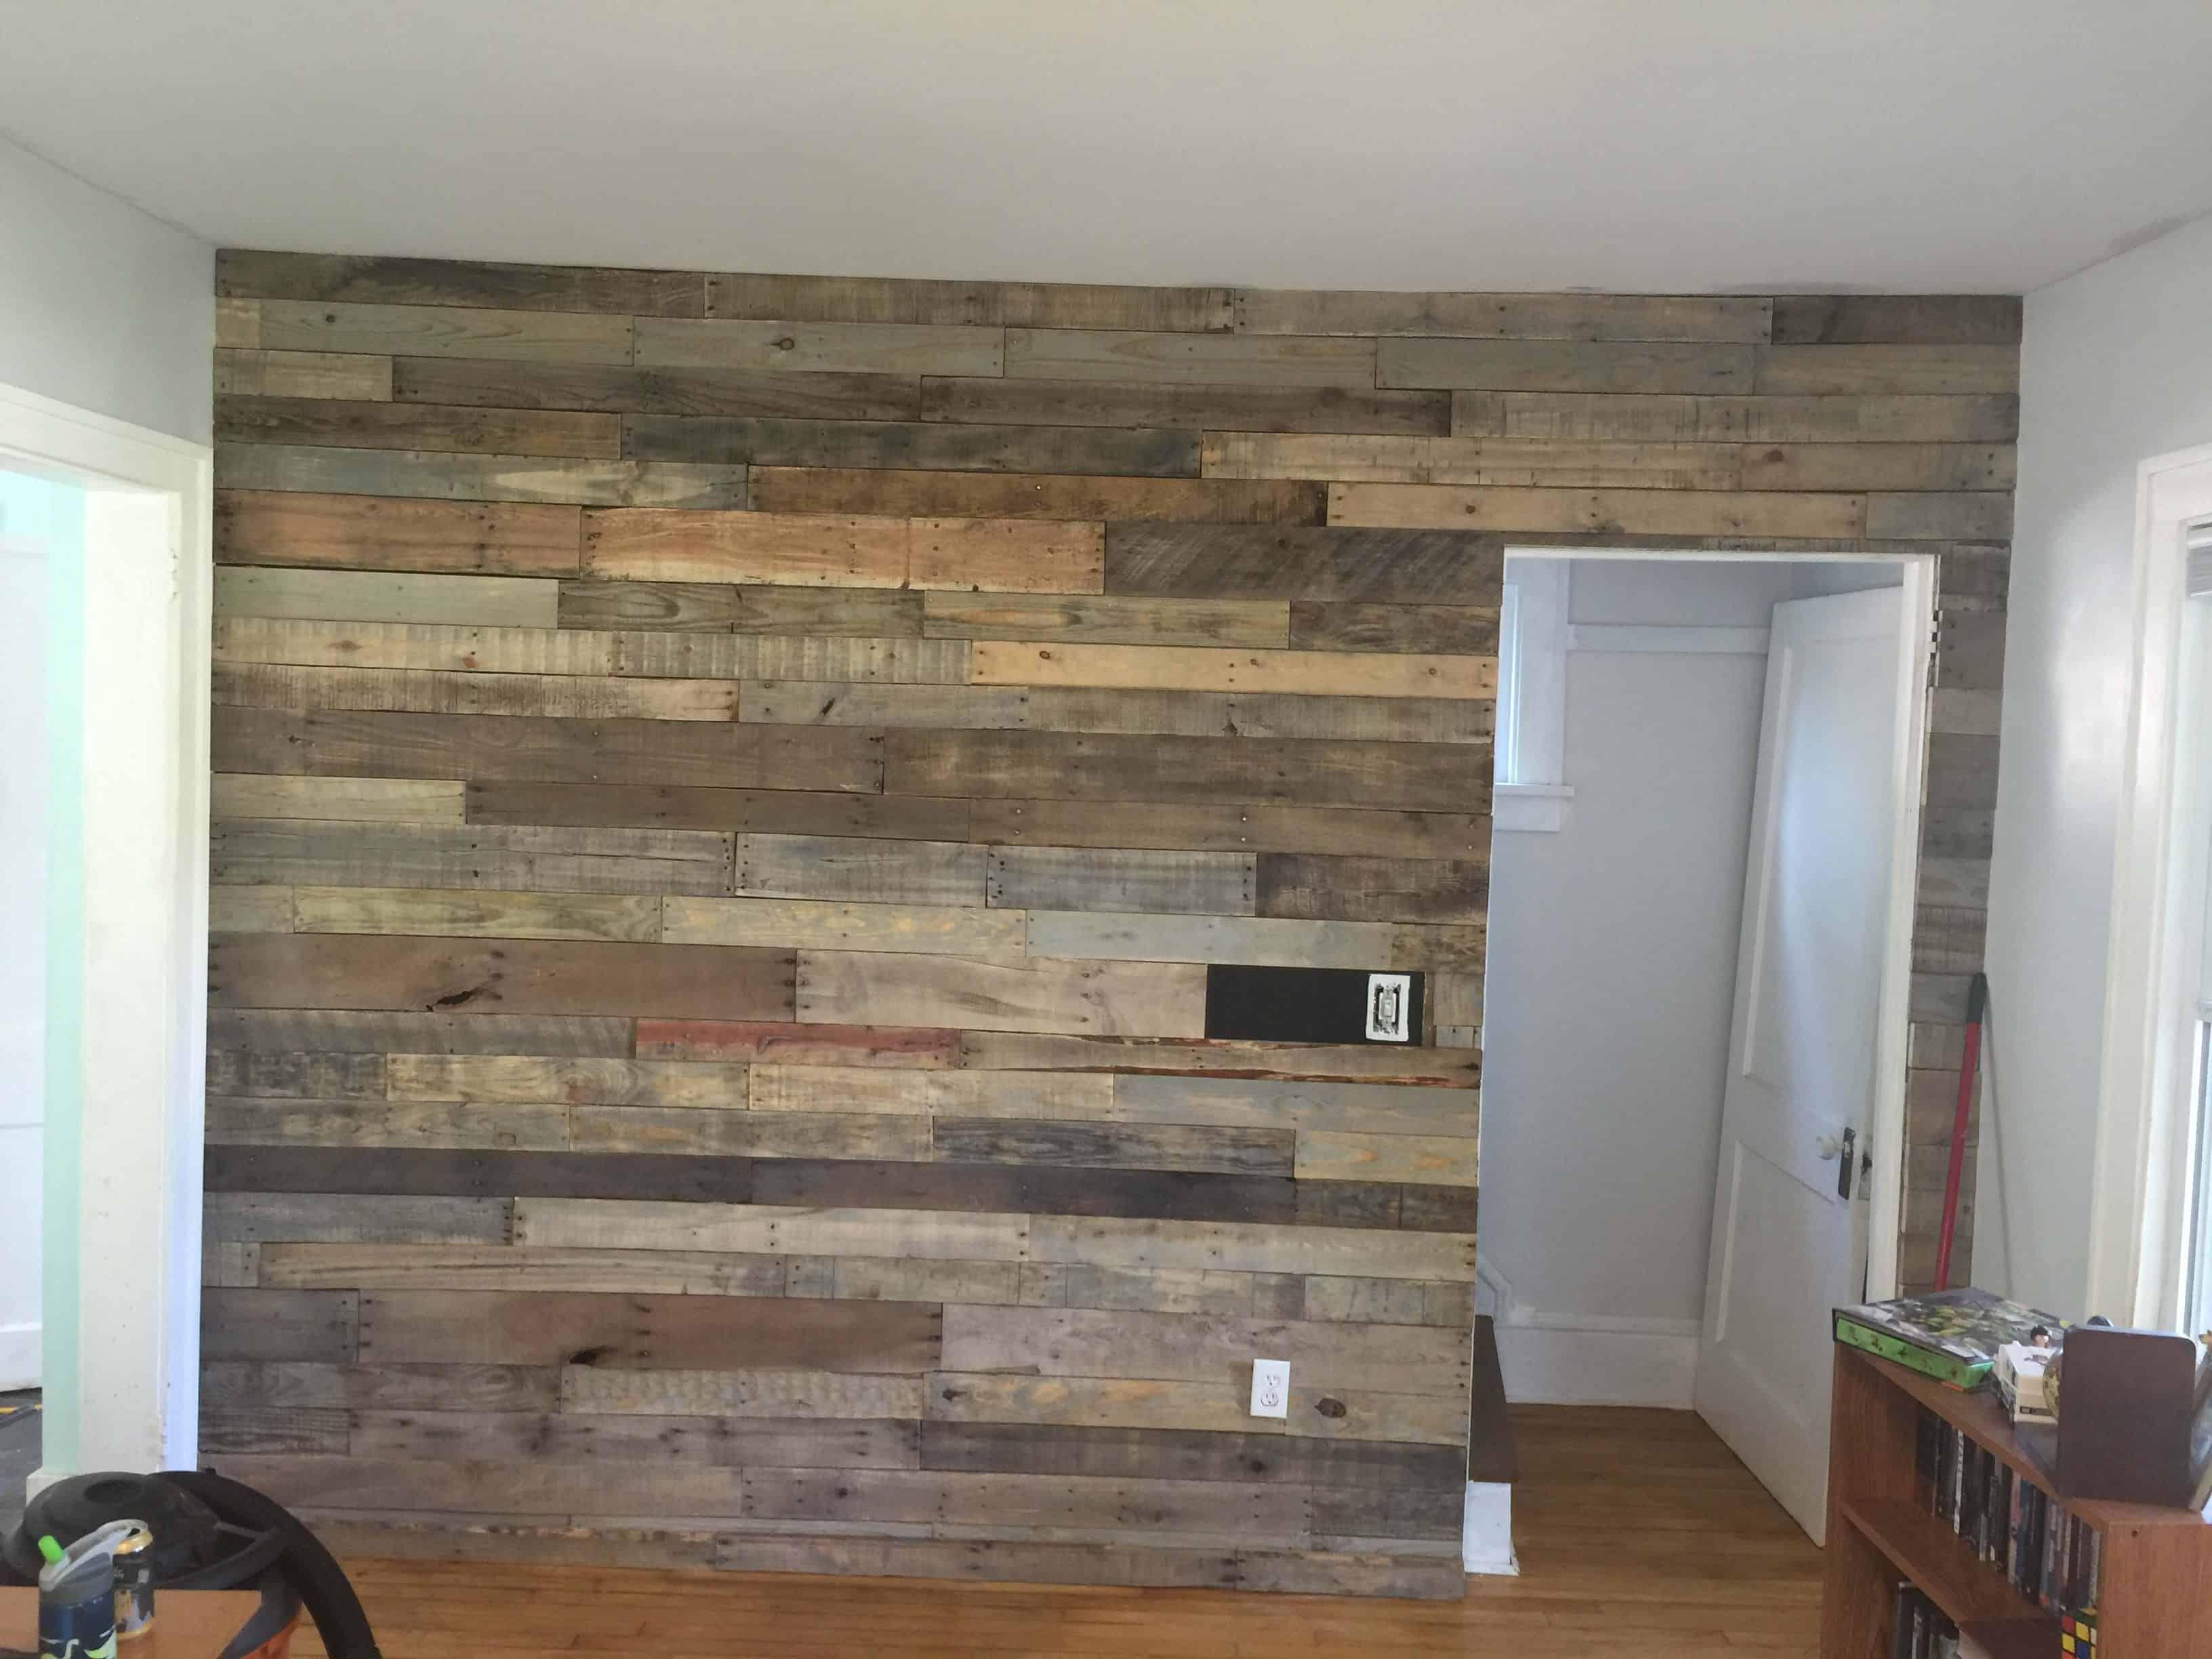 Living Room Pallet Accent Wall 1001 Pallets Wood Pallet Wall Pallet Accent Wall Pallet Projects Decor